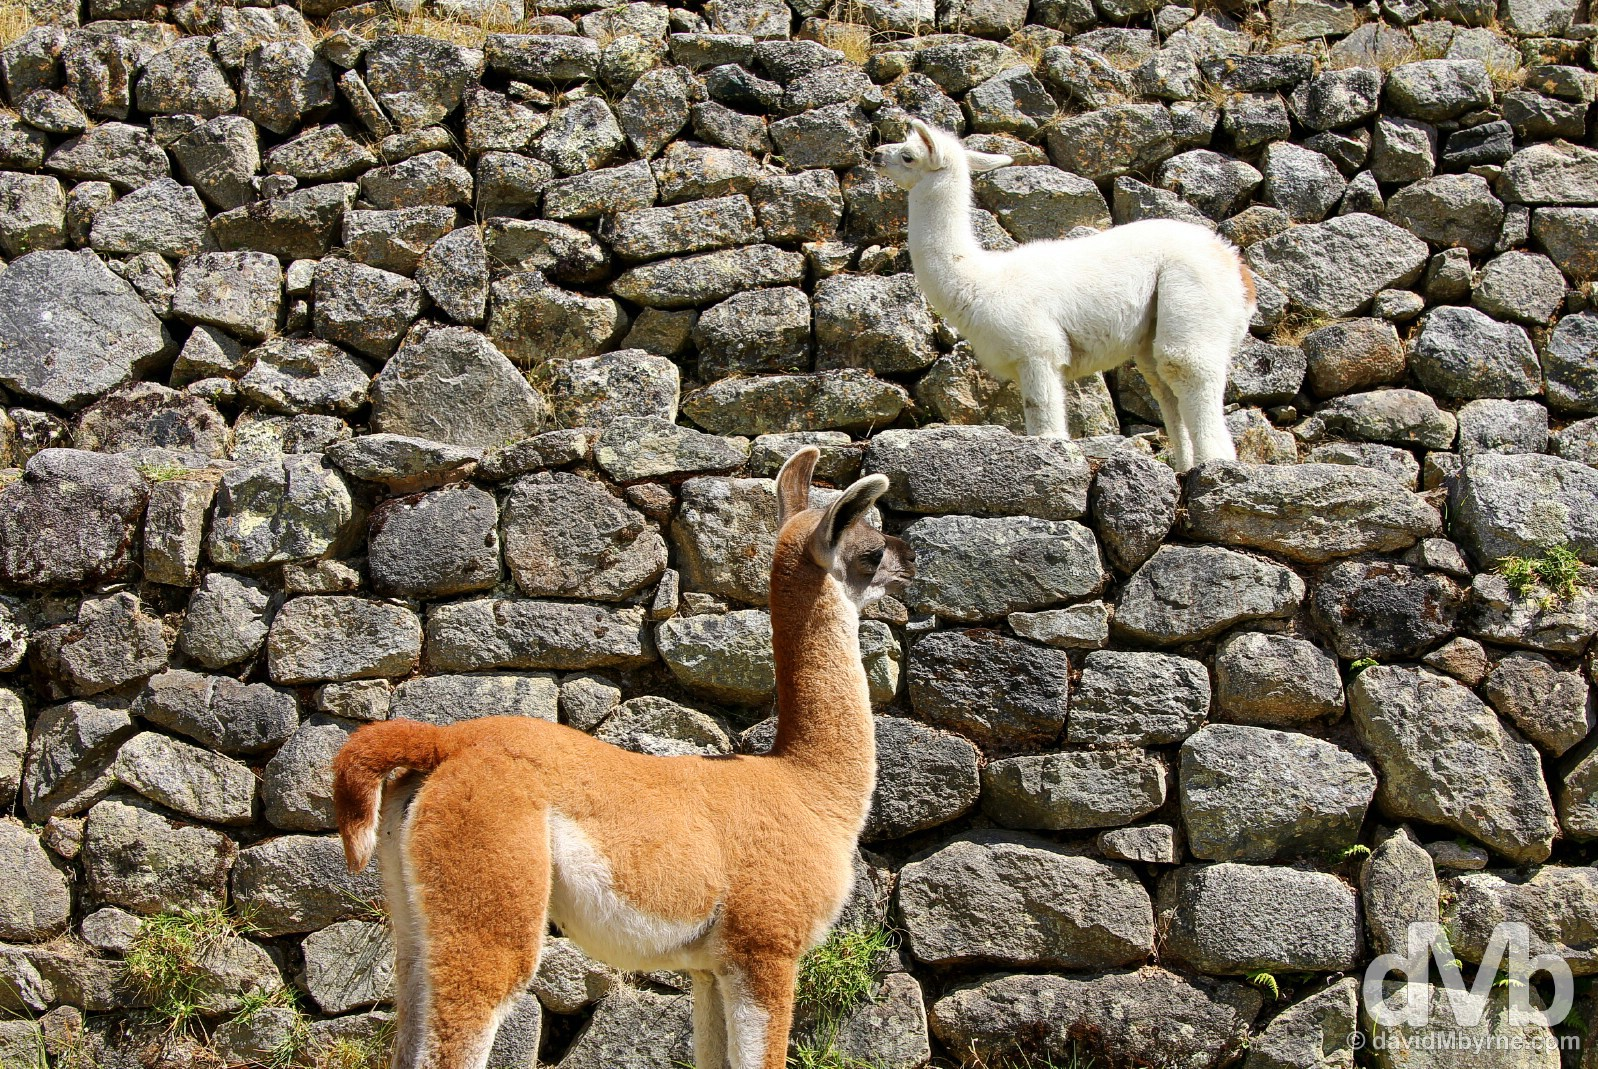 Baby llamas on the terraces of Machu Picchu, Peru. August 15, 2015.